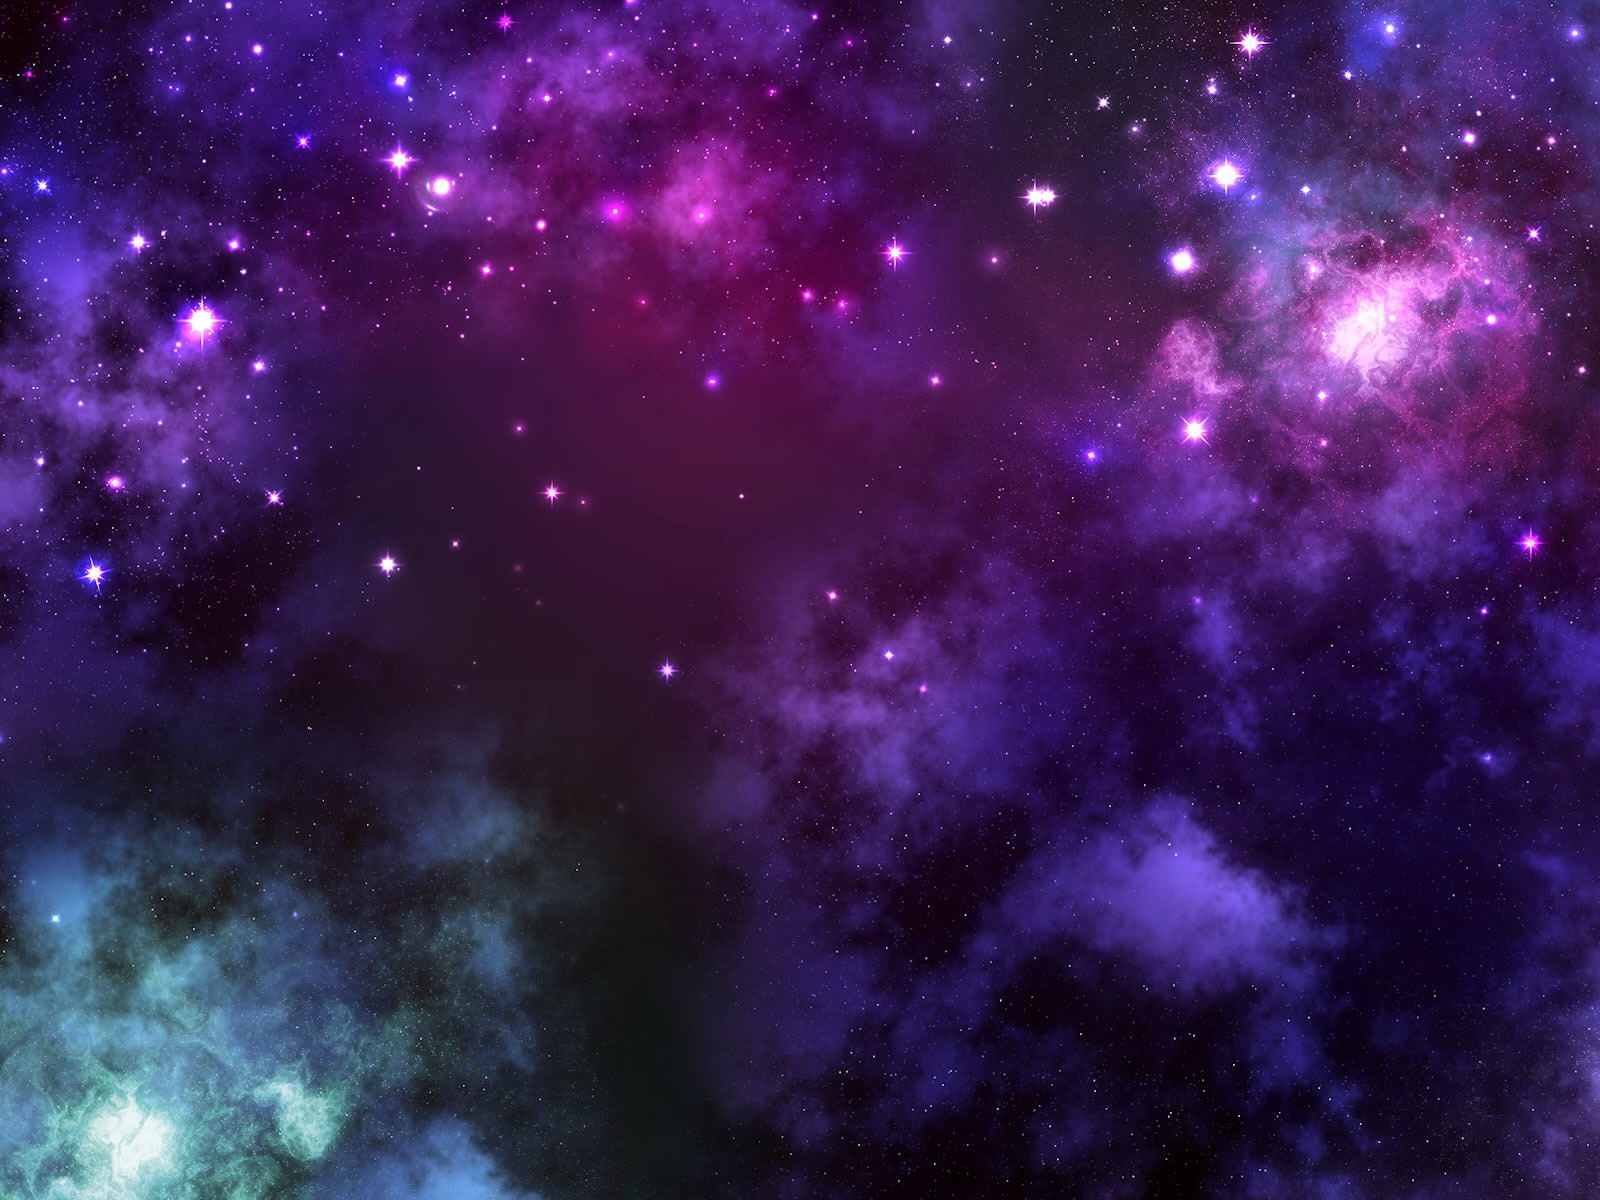 Outer Space Wallpaper 1600x1200 1600x1200